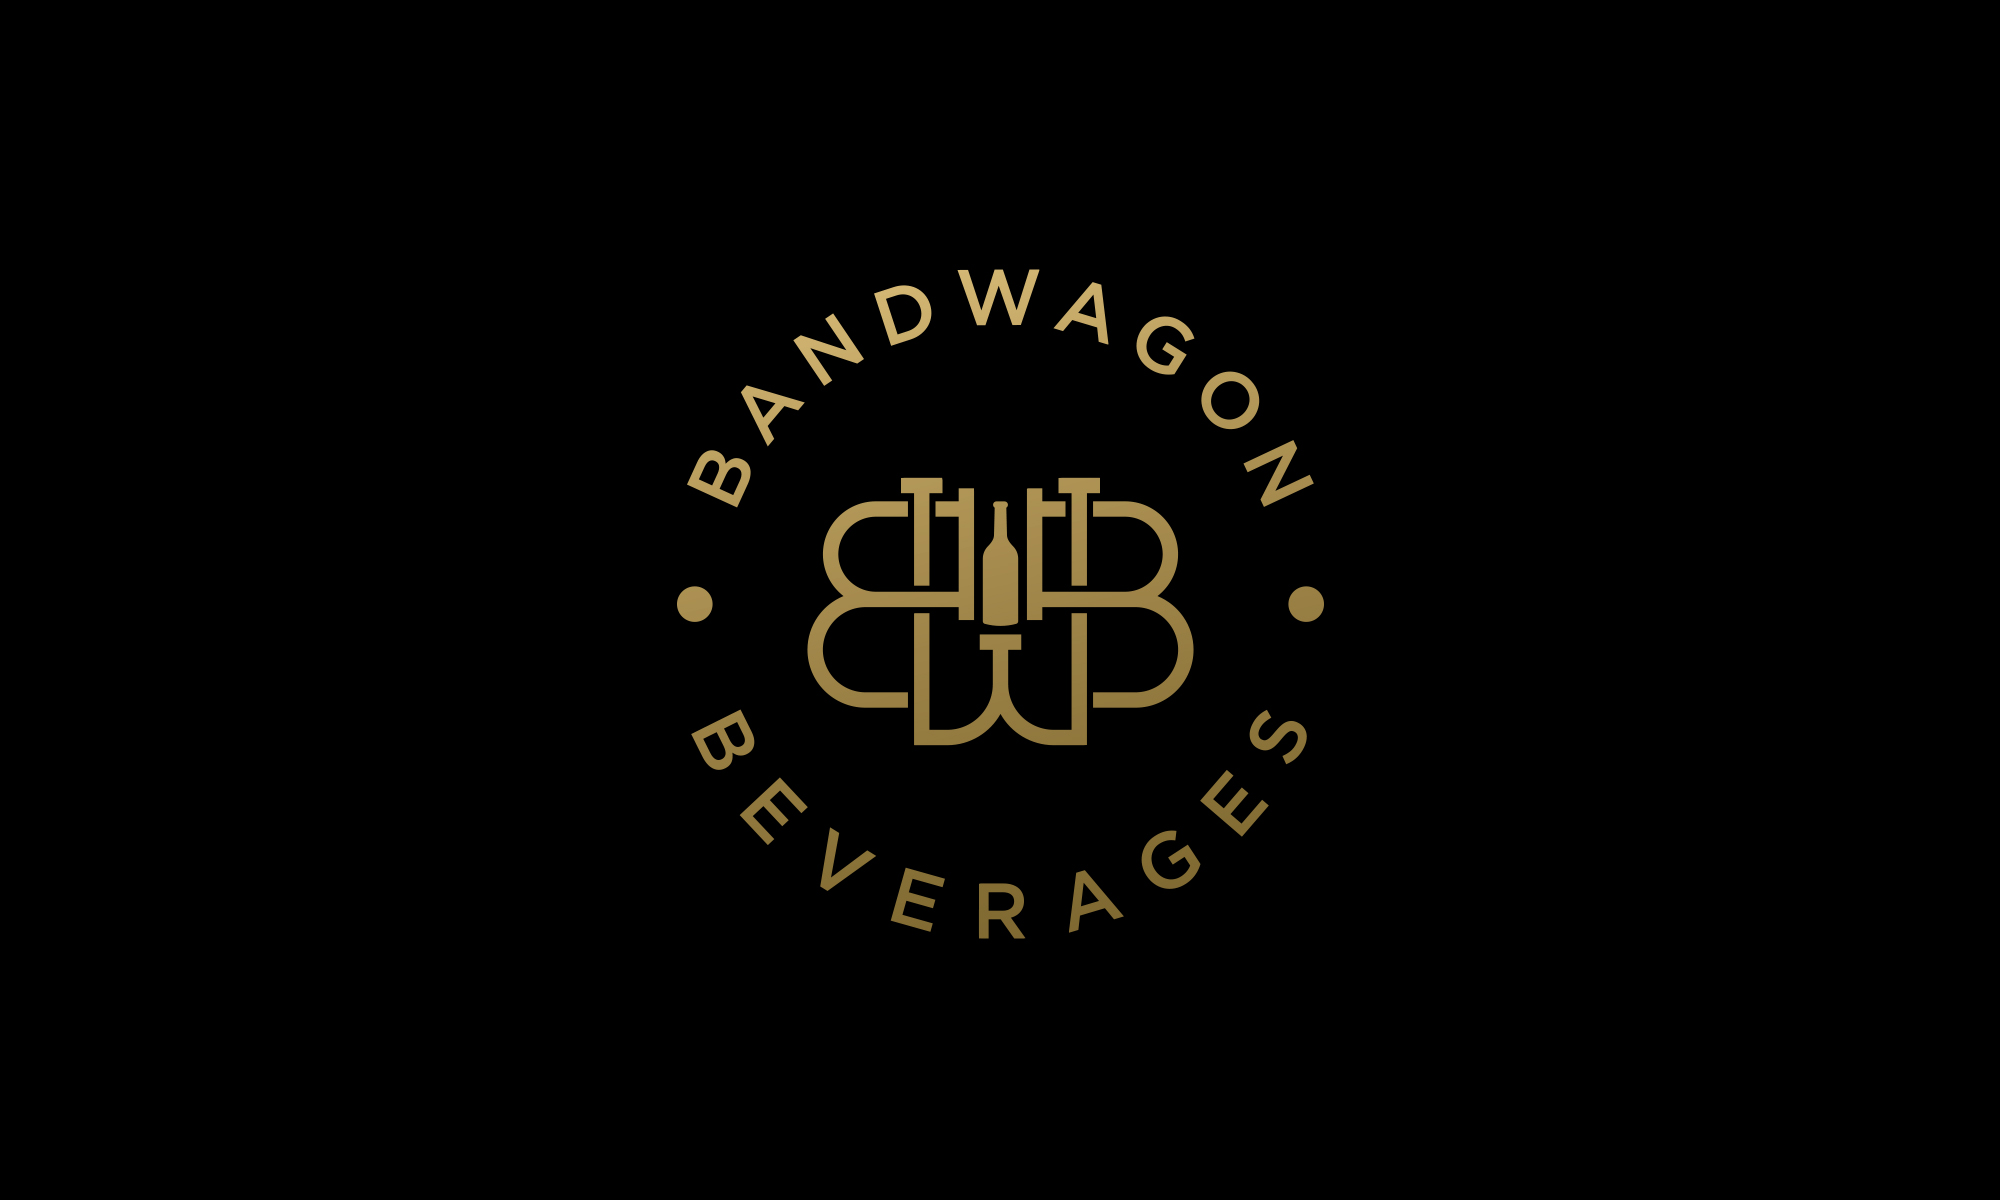 Bandwagon Beverages - Get On It!